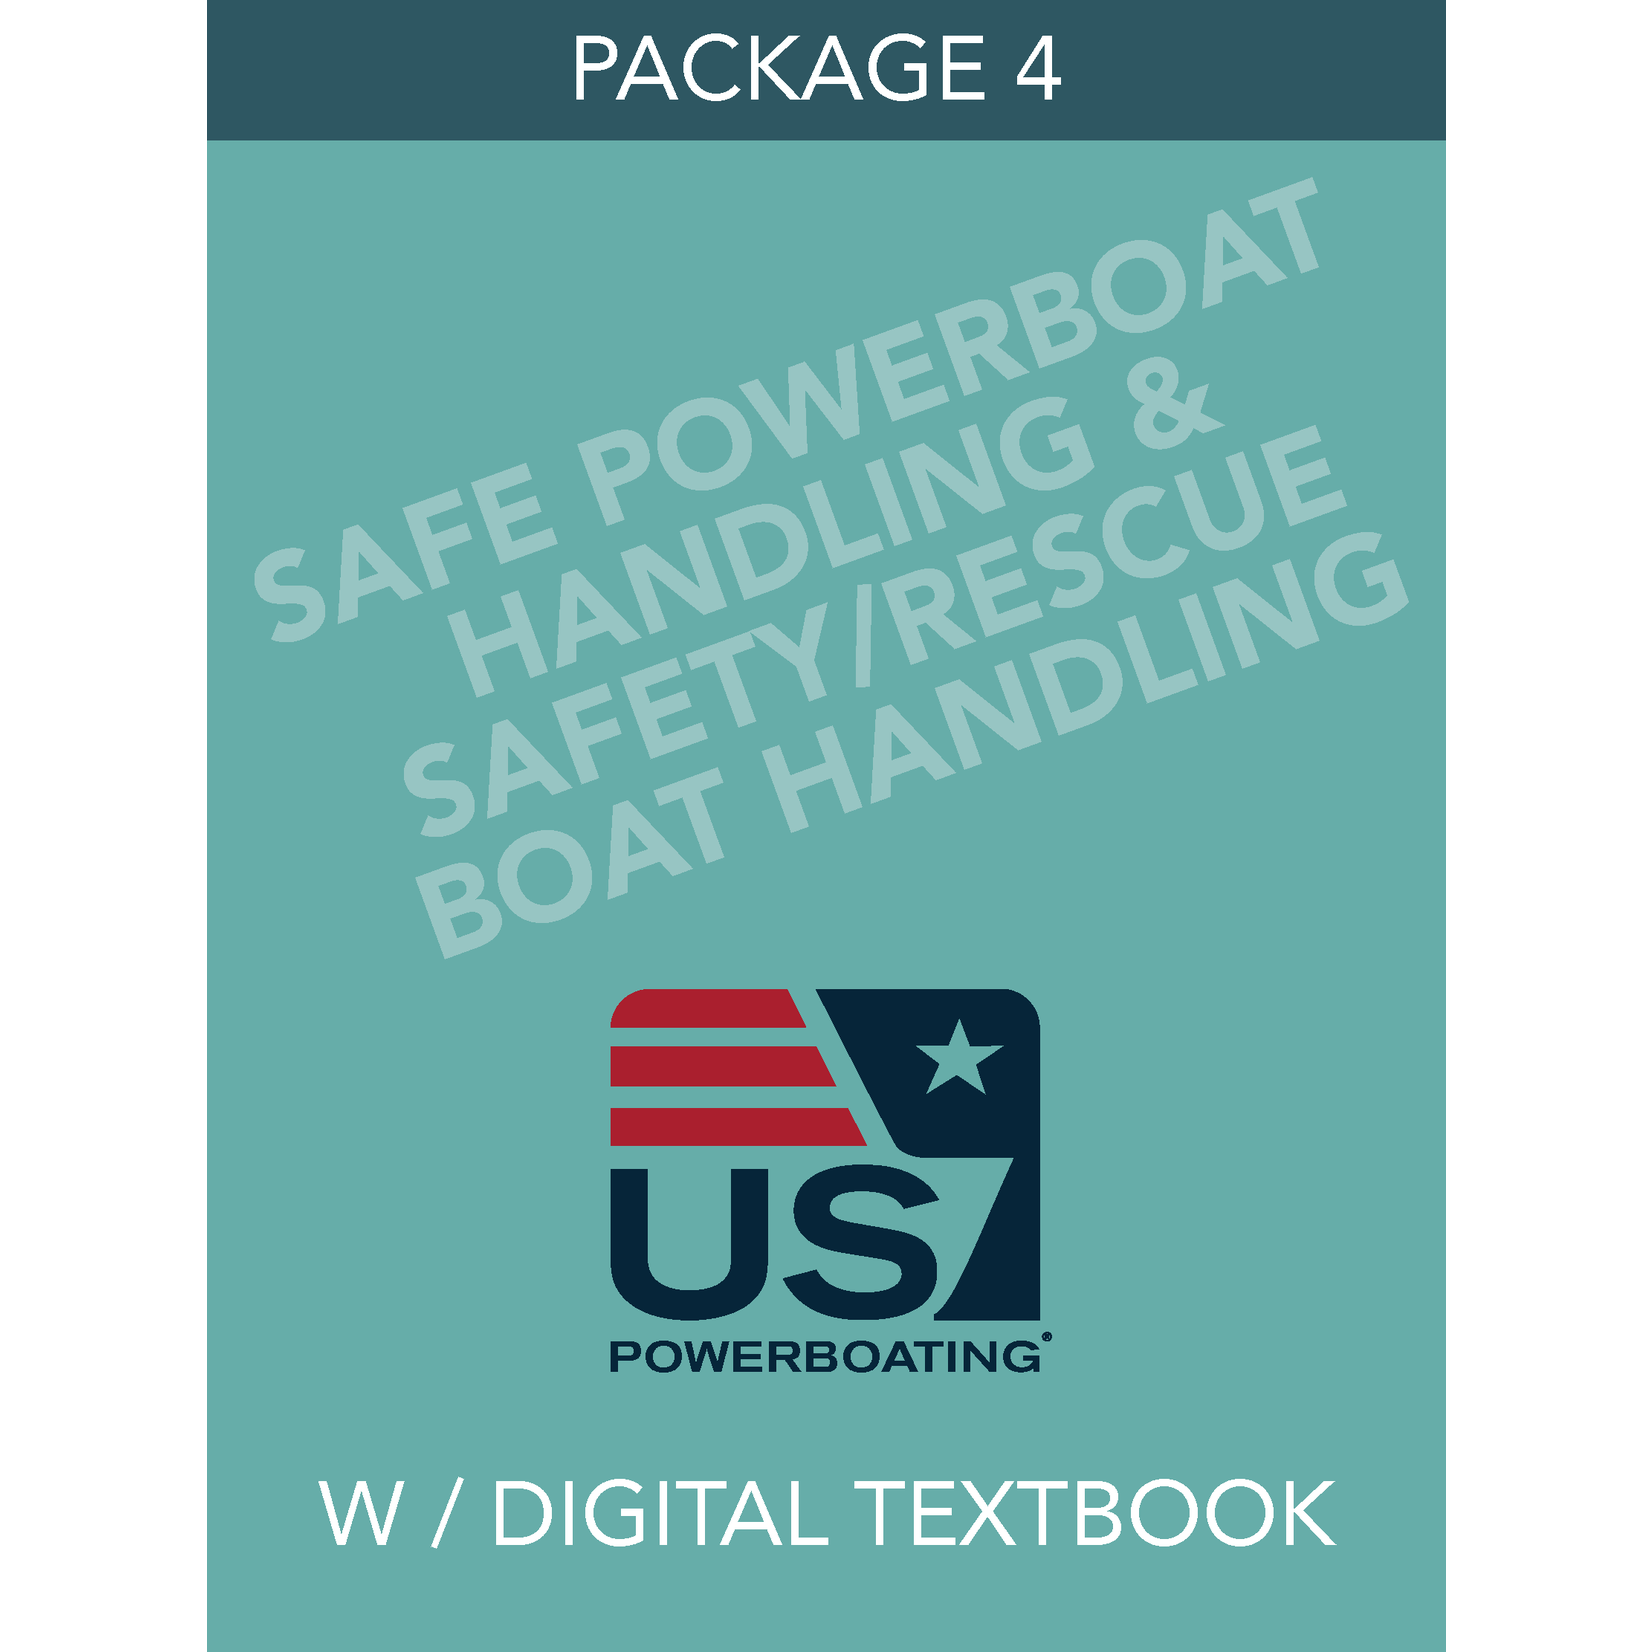 Safe Powerboat Handling & Safety/Rescue Boat Handling – Package 4 with Digital Textbook